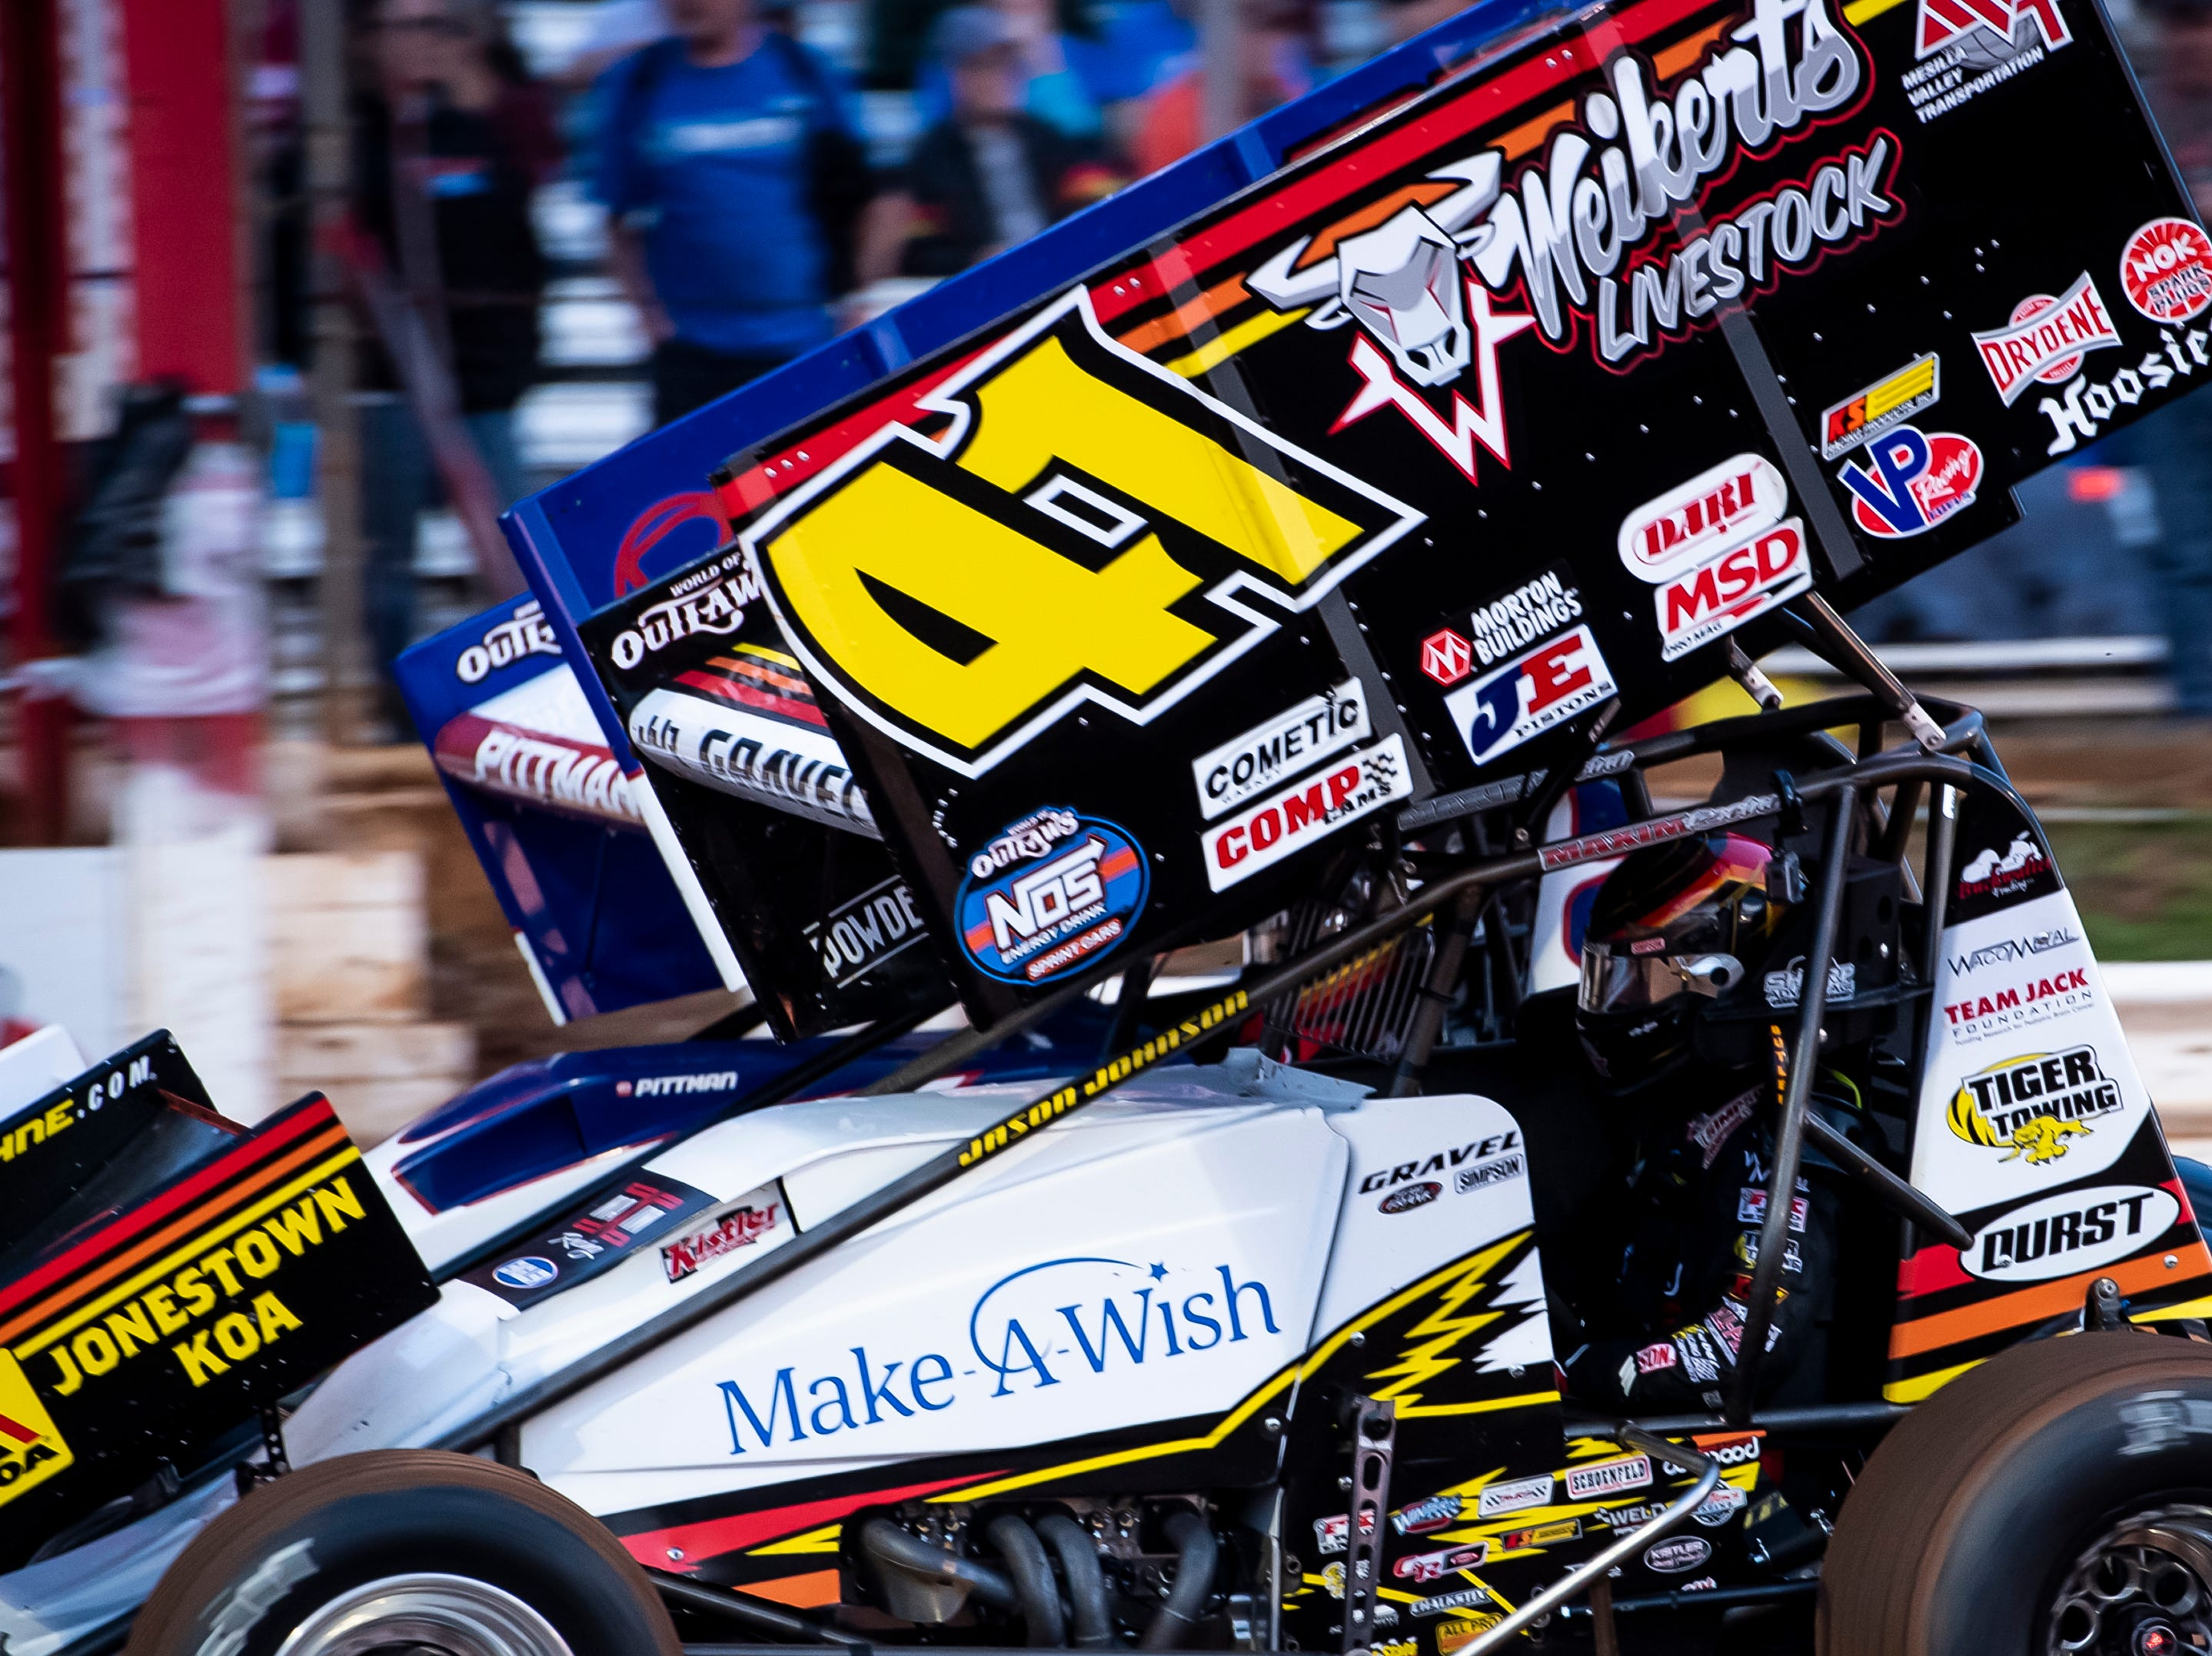 David Gravel races in the number 41 car during the World of Outlaws Gettysburg Clash at Lincoln Speedway in Abbottstown on Wednesday, May 15, 2019.